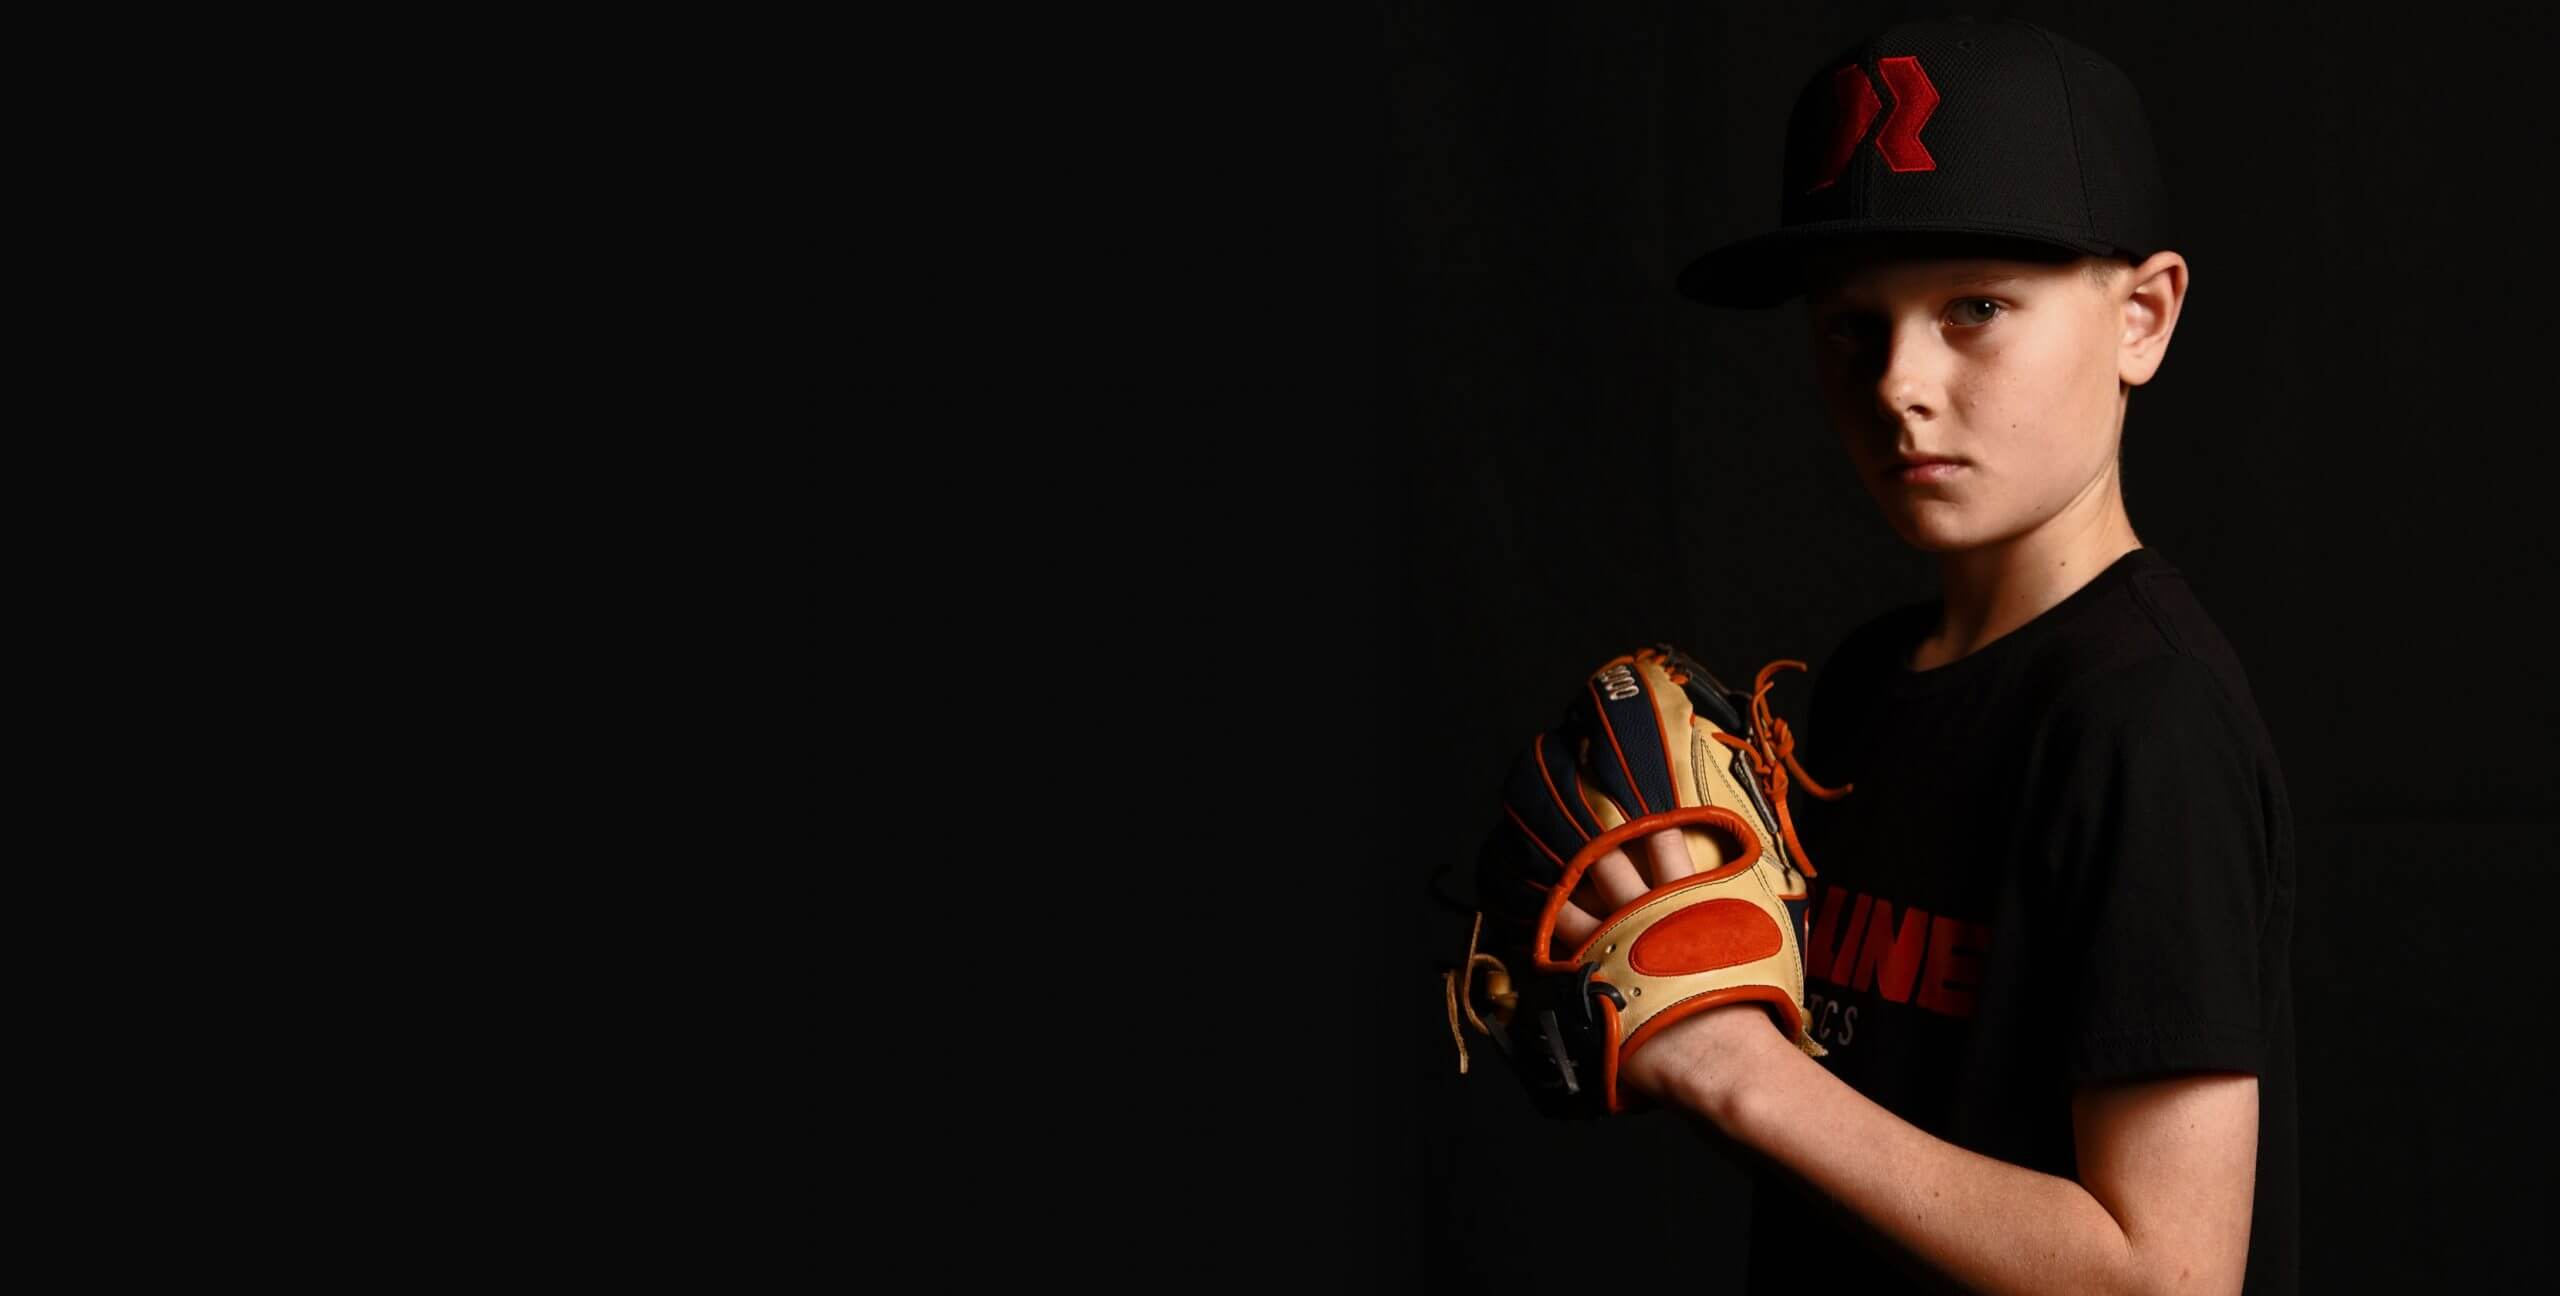 Young boy holding a baseball in a glove.